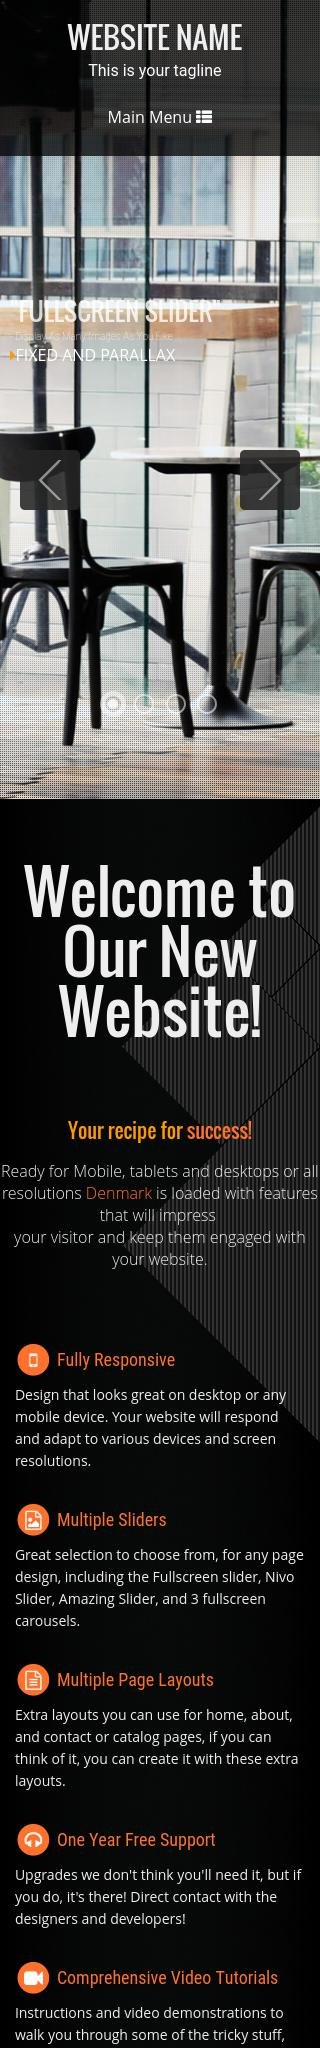 Mobile: Cafe Wordpress Theme